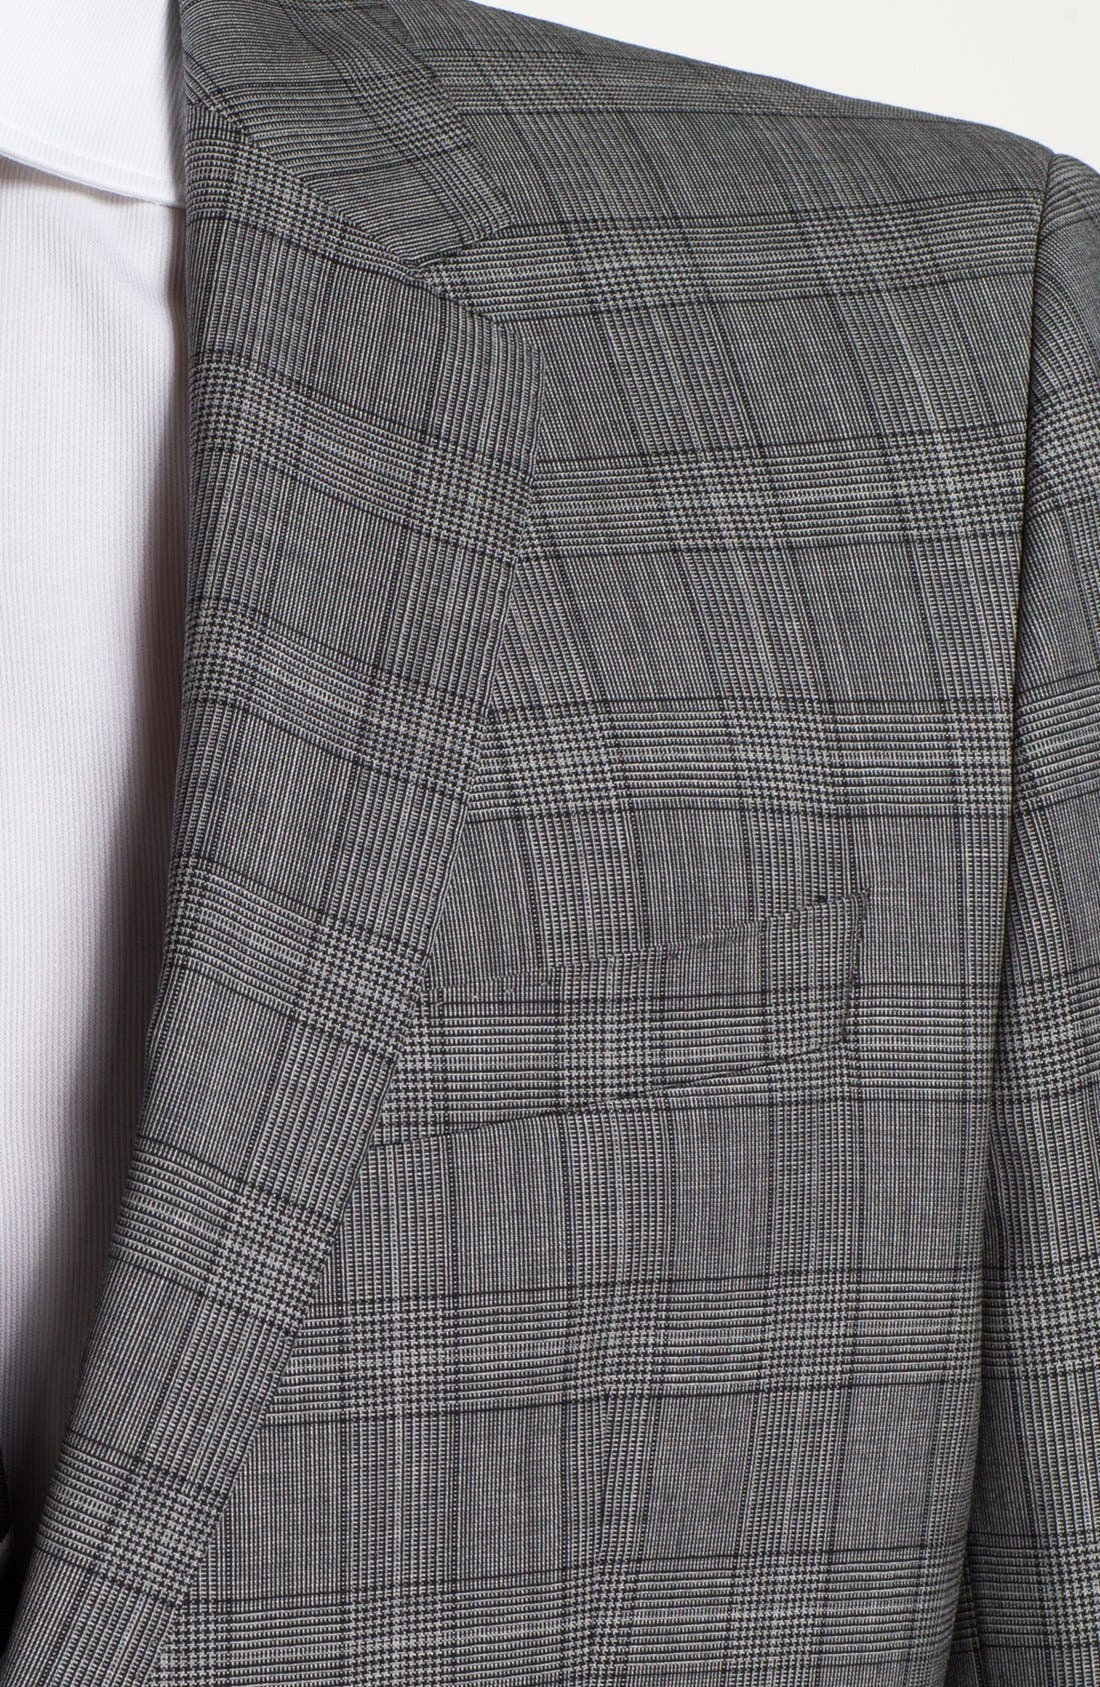 Alternate Image 2  - BOSS HUGO BOSS 'Huge/Genius' Extra Trim Fit Plaid Suit